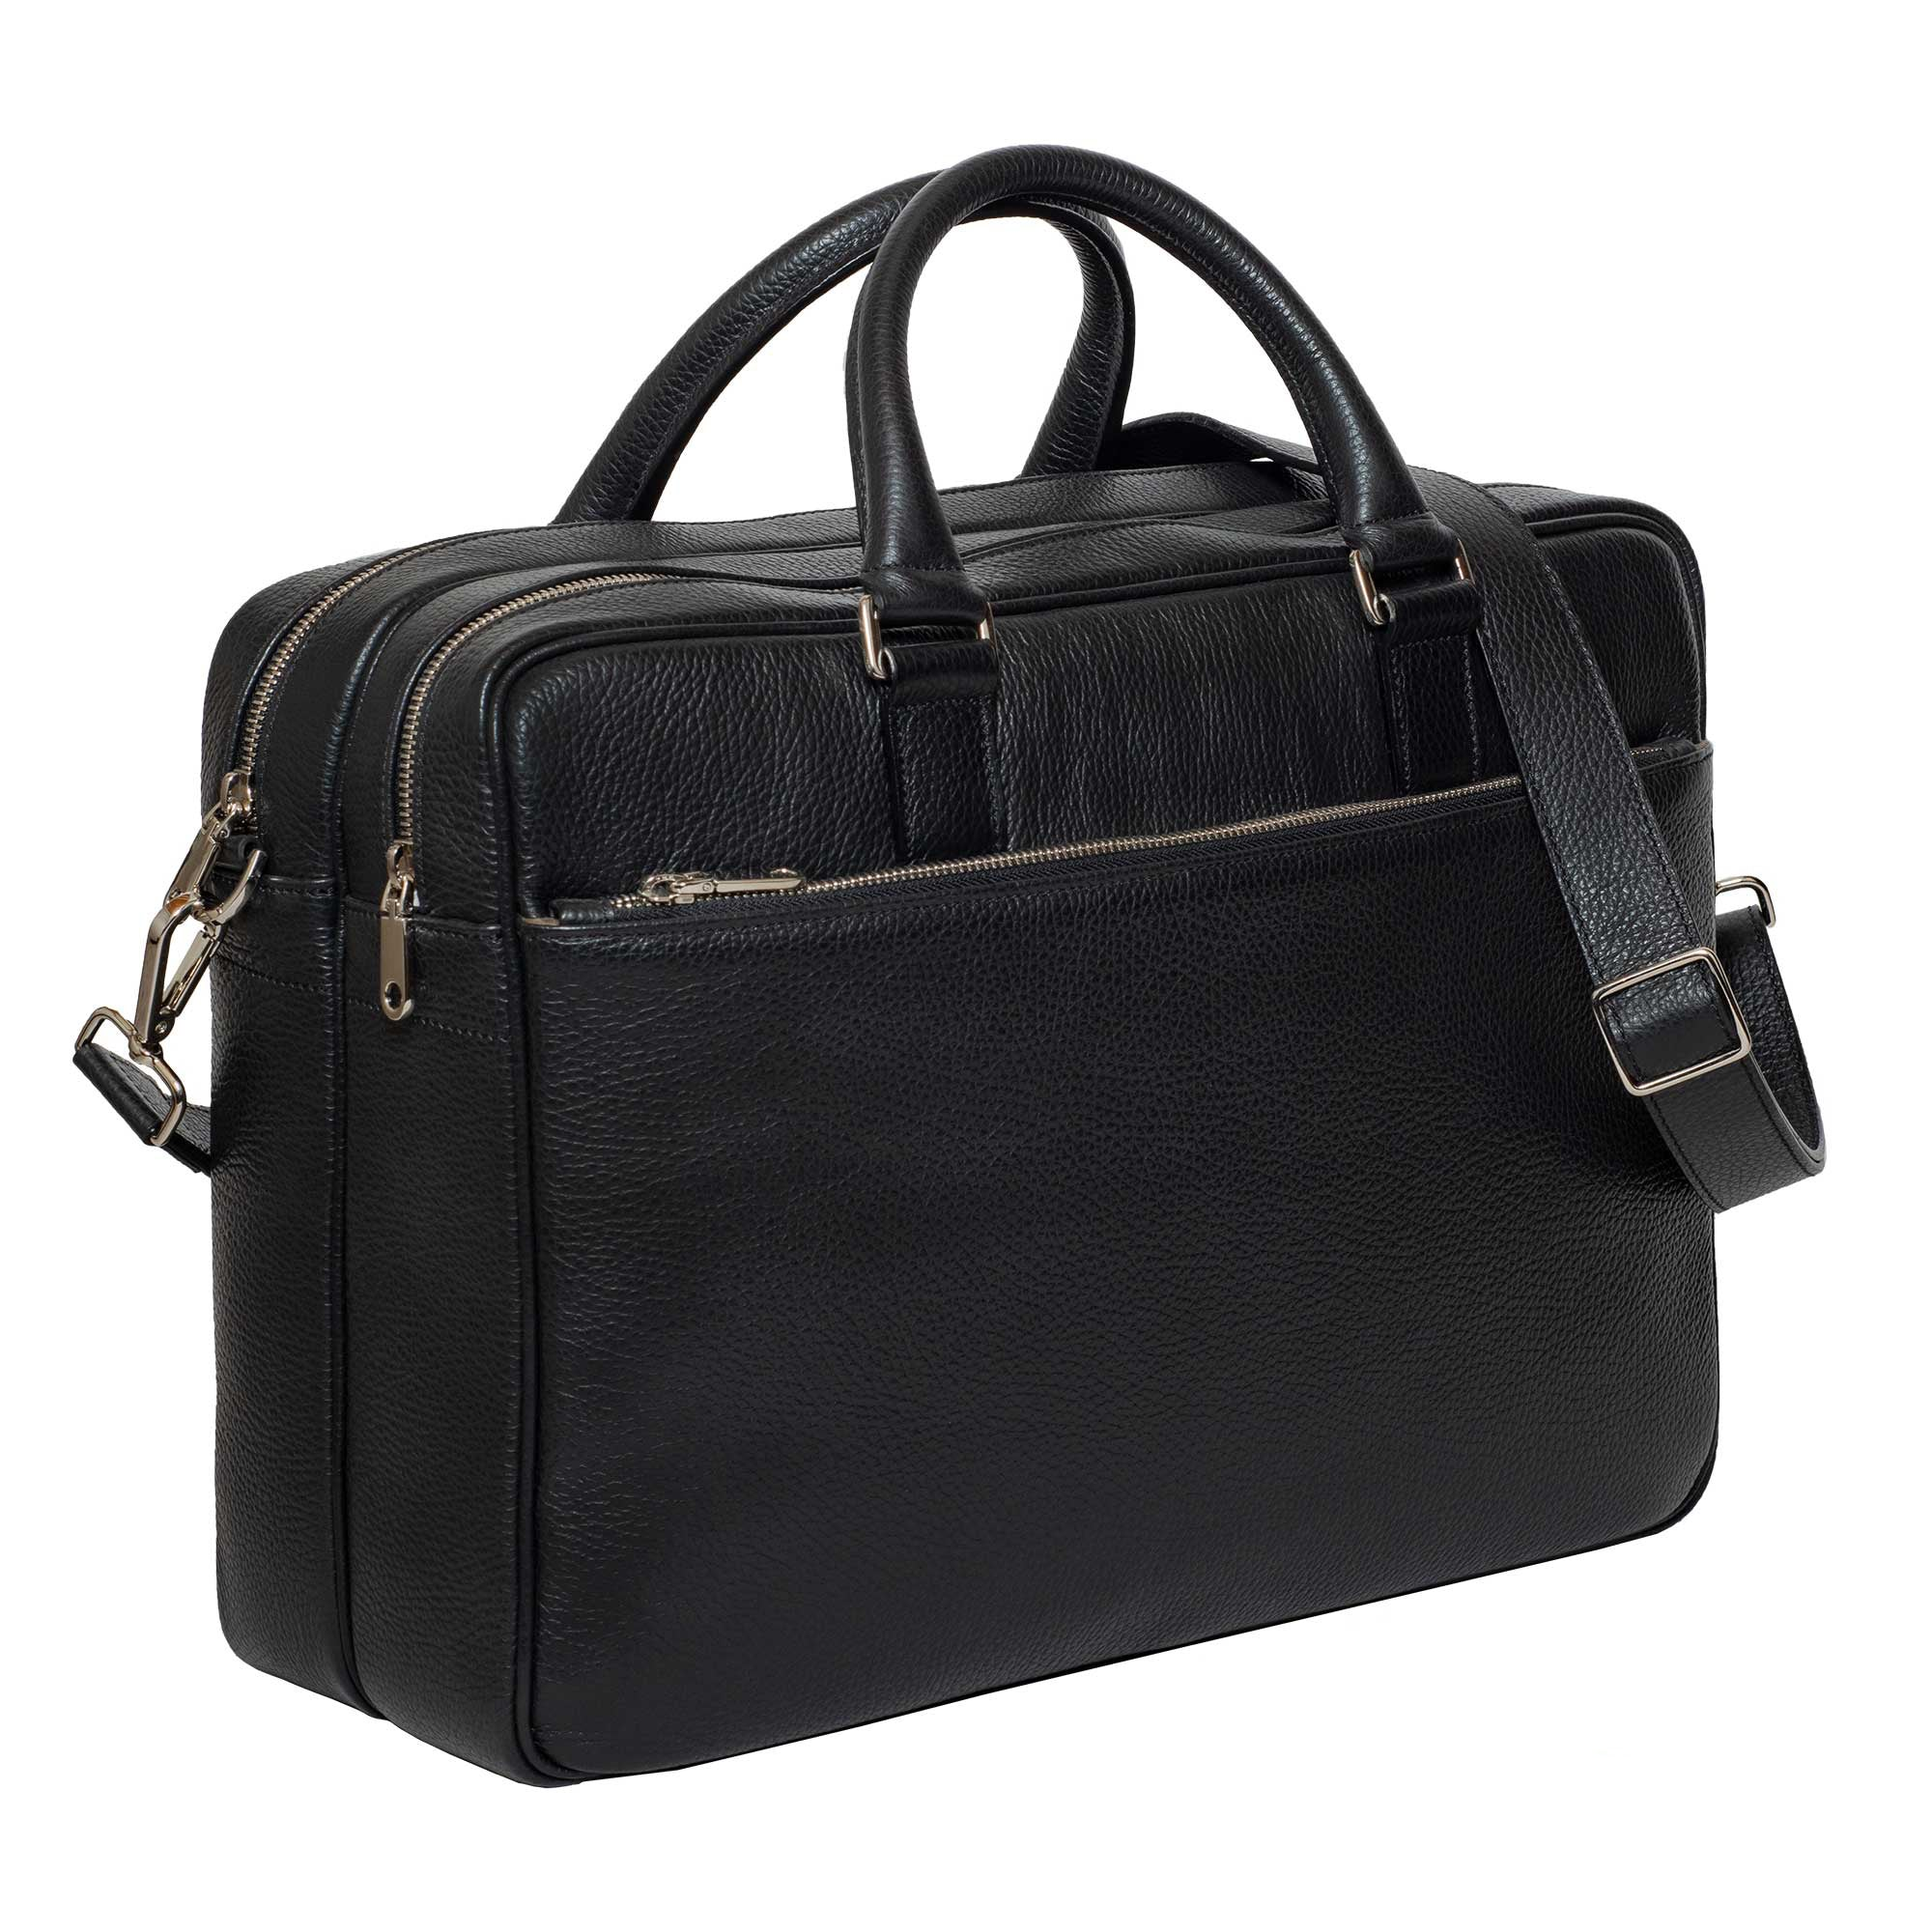 DiLoro Italian Leather Briefcases for Men | Made in Italy - Front, Side View with Strap